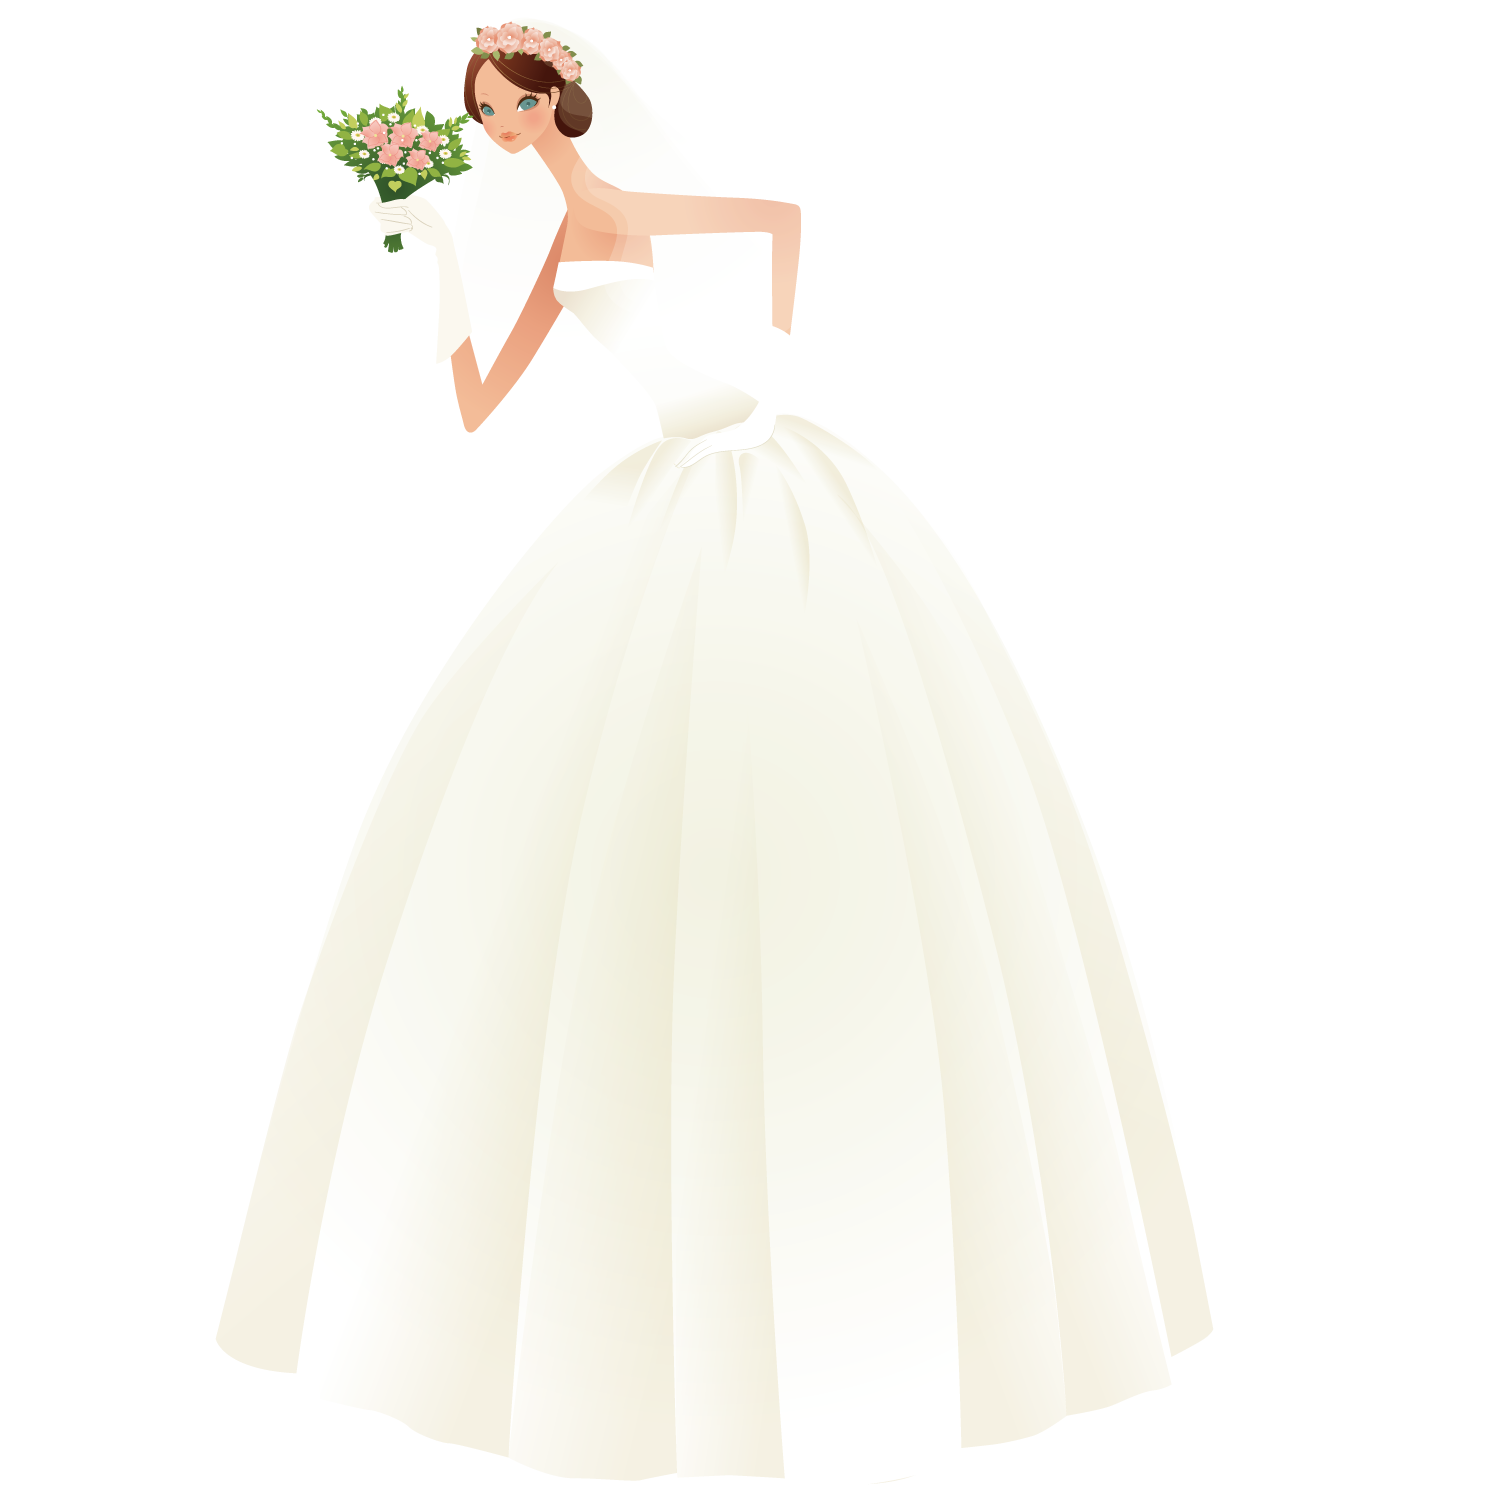 Bride dress png. Wedding the most beautiful